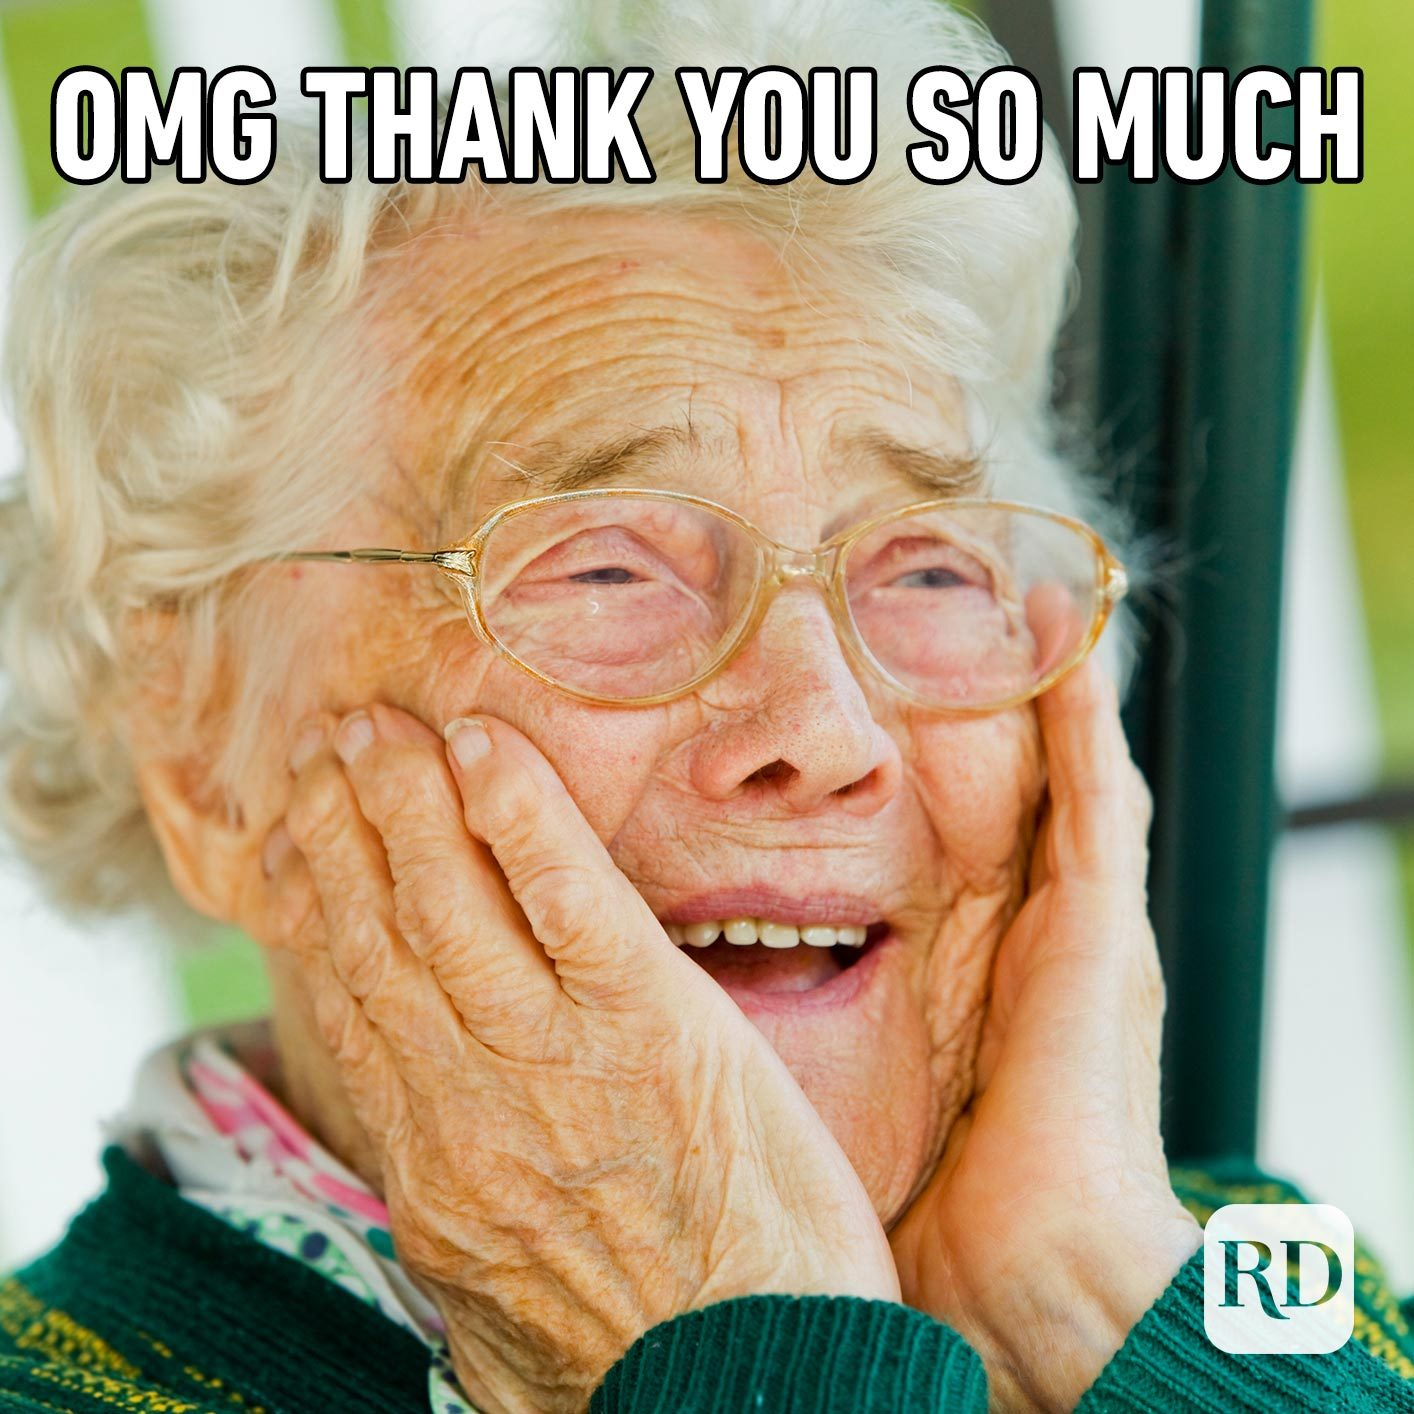 Woman crying happily. Meme text: OMG thank you so much